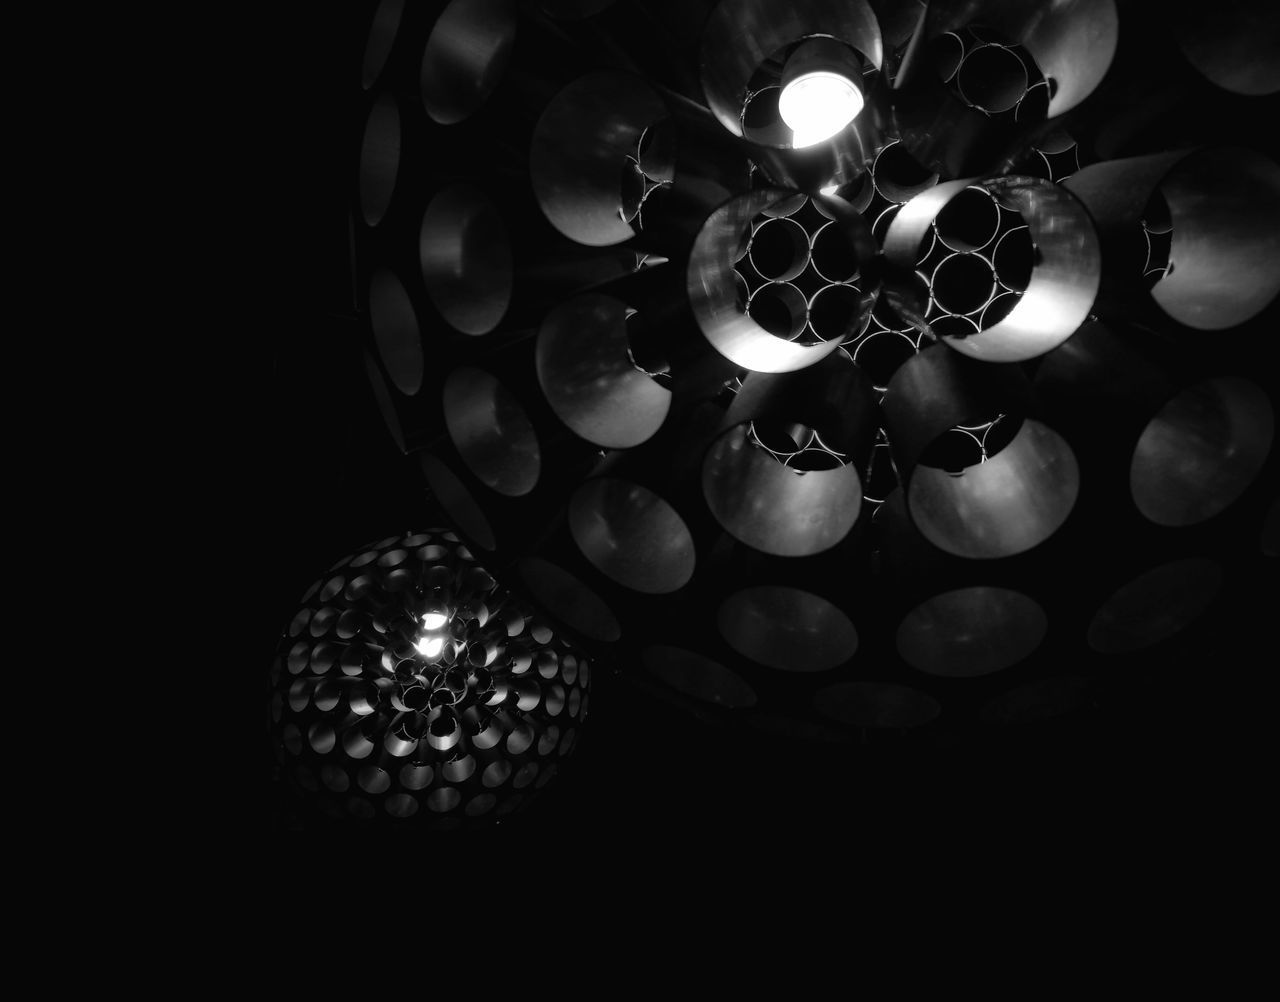 lights on. Close-up Black Background Abstract Shiny Crystal Glassware Pattern Lines And Shapes Lineart Adults Only First Eyeem Photo Lines And Design Lines&Design Photooftheday Circles Circular EyeEm Best Shots Eyeem Philippines EyeEmBestPics EyeEmNewHere Outdoors Modern EyeEm Best Shots - Black + White Architecture Blackandwhite Photography Blackandwhite Welcome To Black The Secret Spaces The Architect - 2017 EyeEm Awards